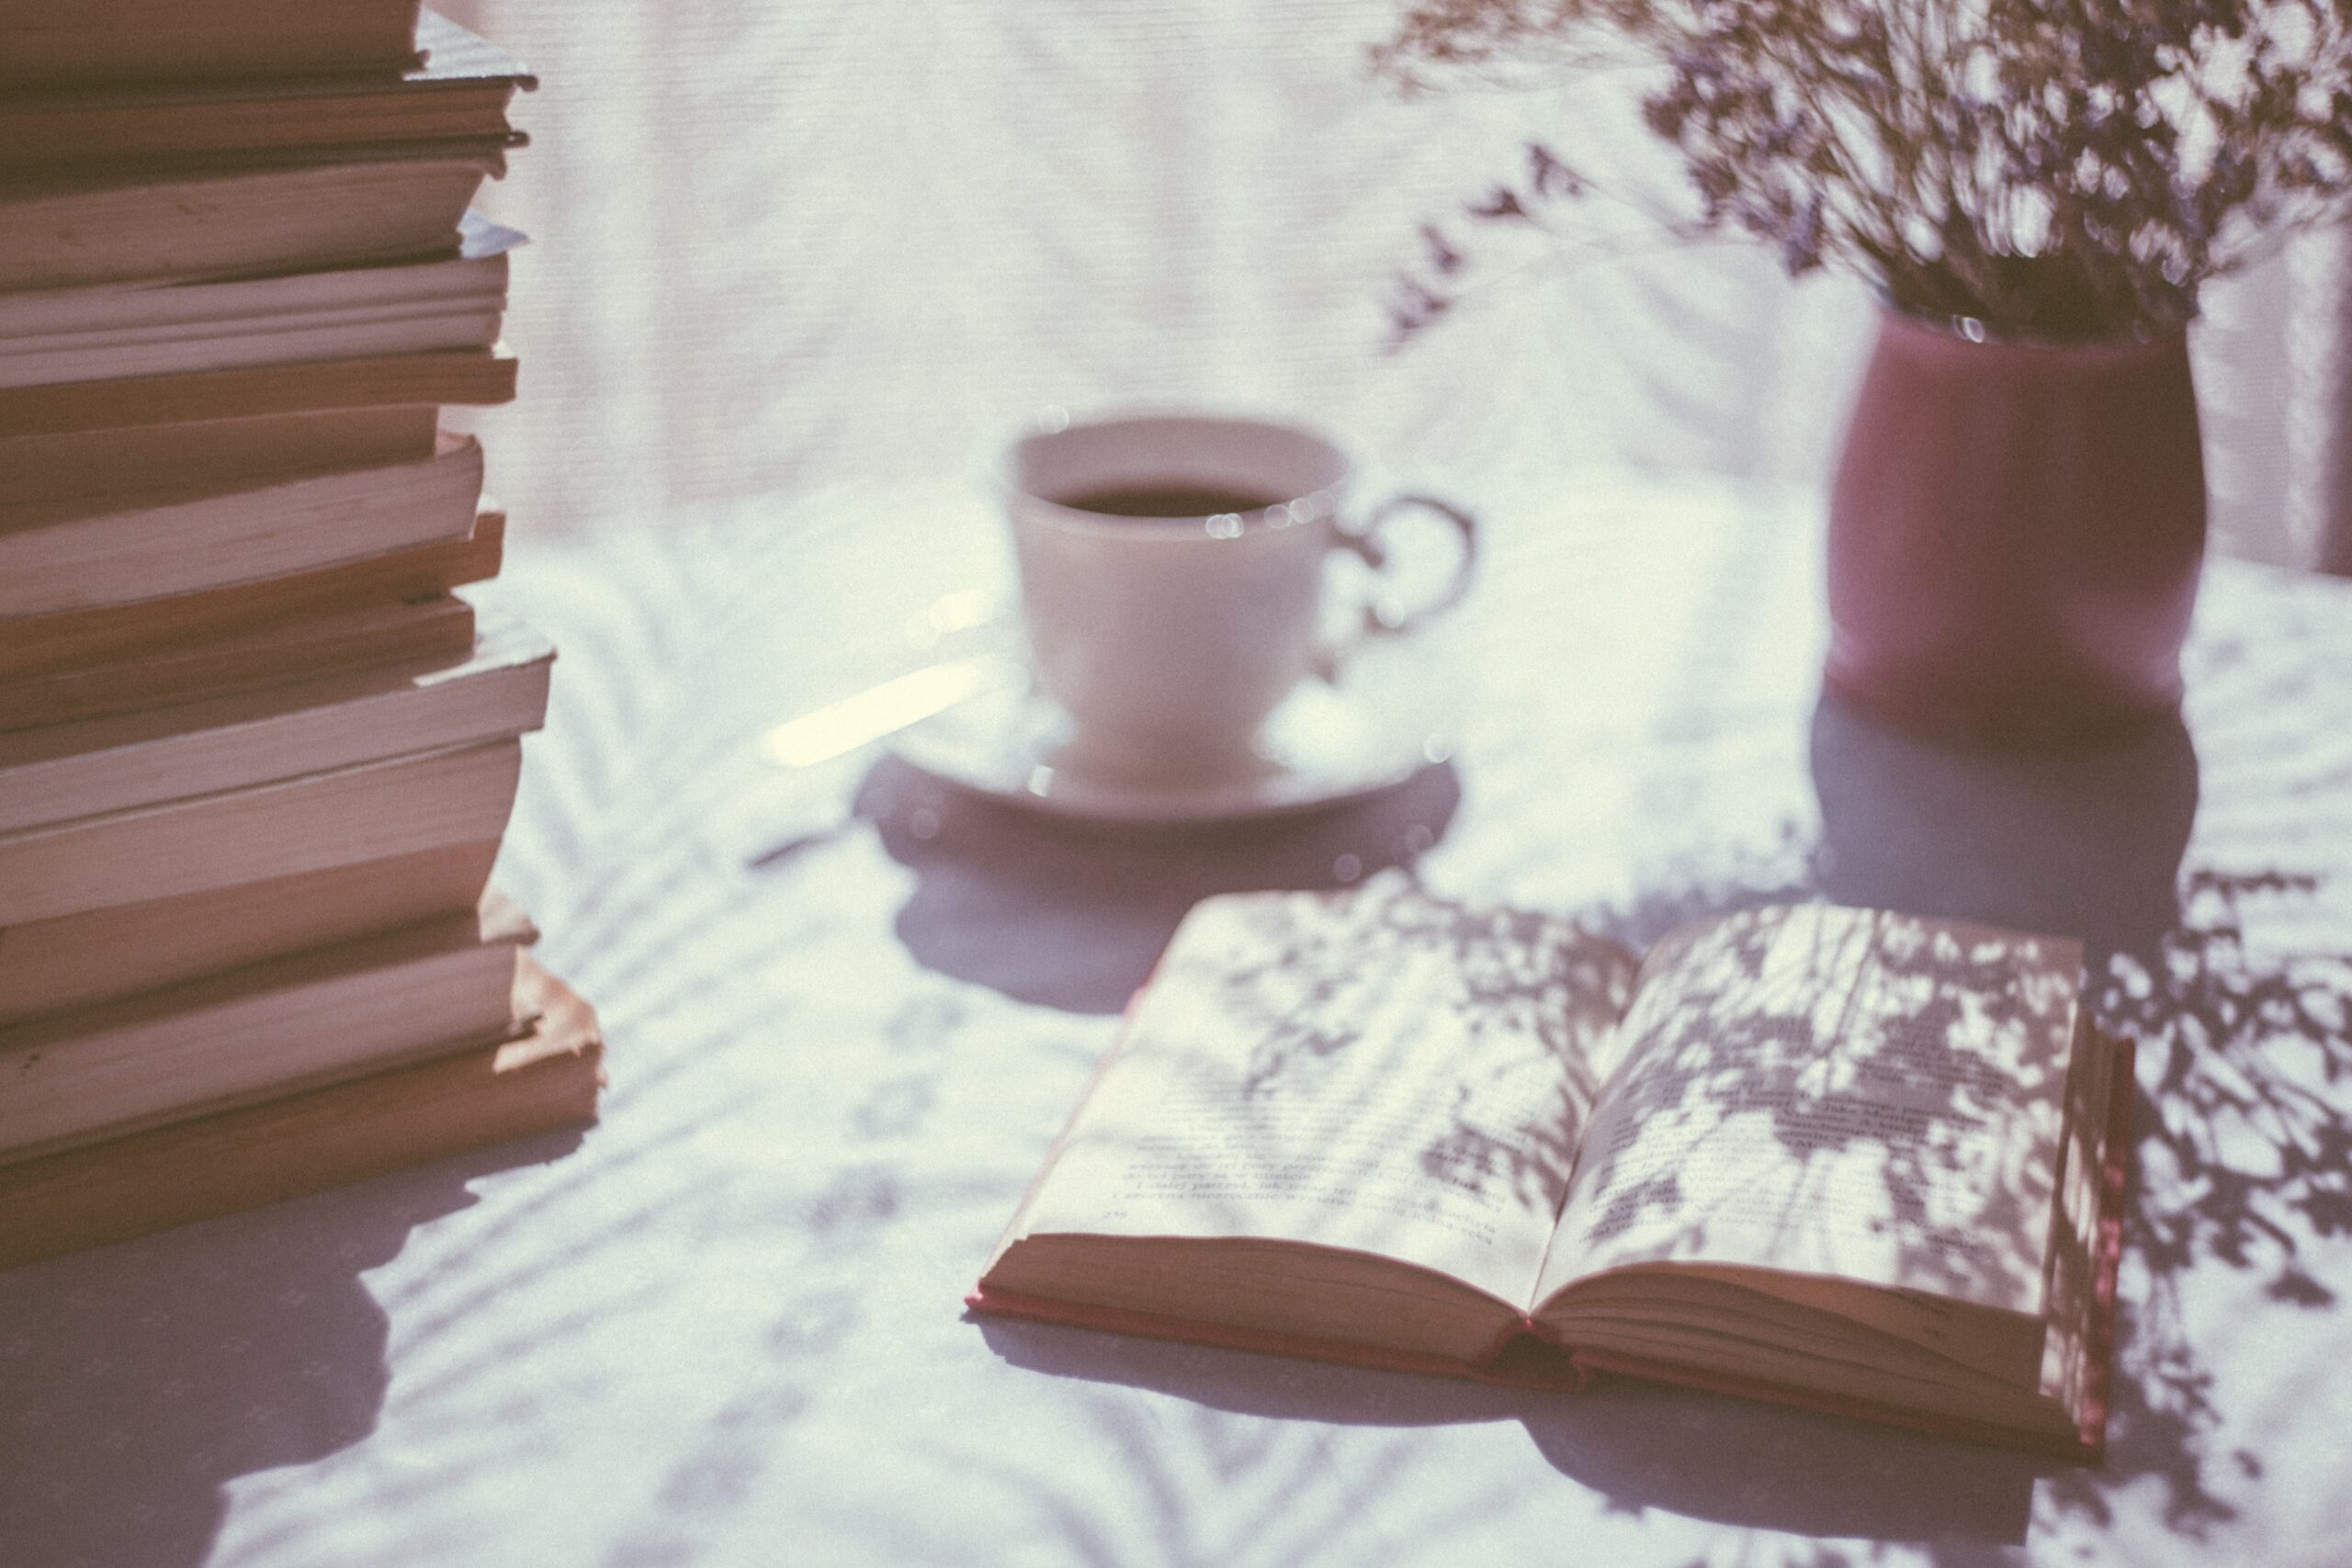 A table of books with a cappuccino cup and a vase of dried flowers on a white table cloth infant of white curtain. There is a shadow casting over the table and one of the books, the only open book on the table.